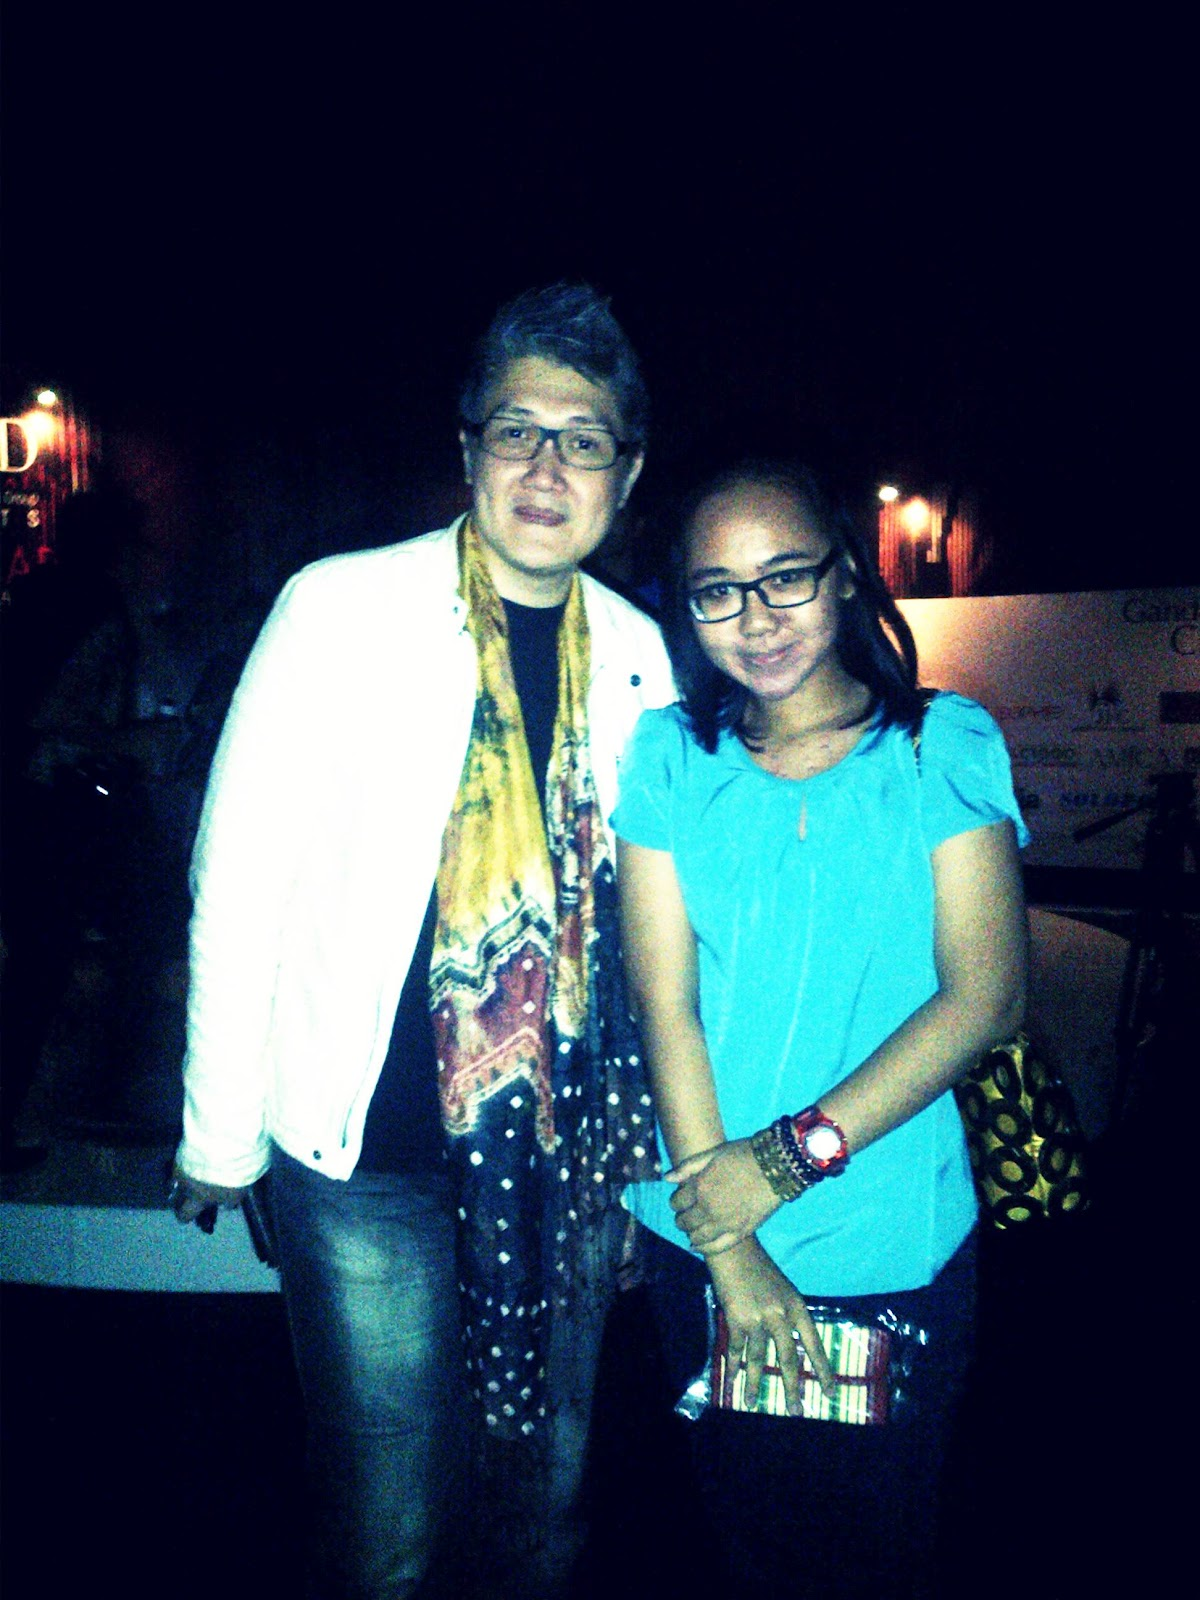 DANAR HADI BATIK & ESMOD INTERNATIONAL IN PESONA BATIK Me and one of the special guest Musa Widyatmojo